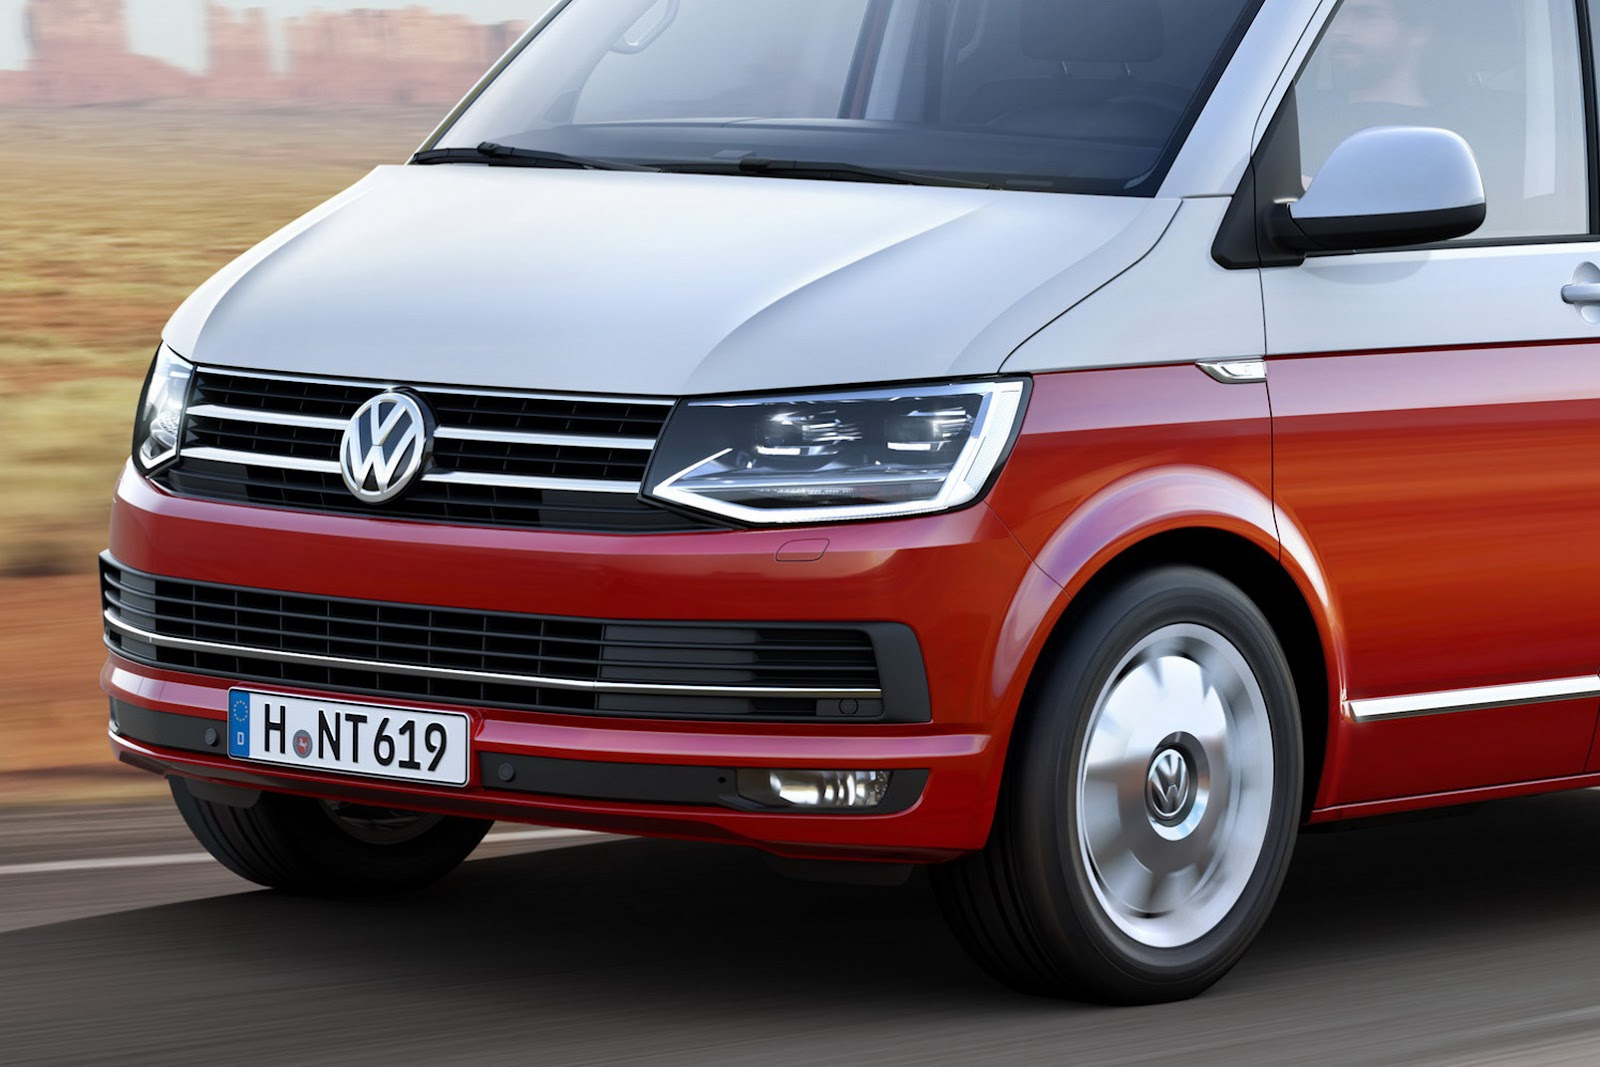 This Is Vw S All New T6 Transporter Van Carscoops